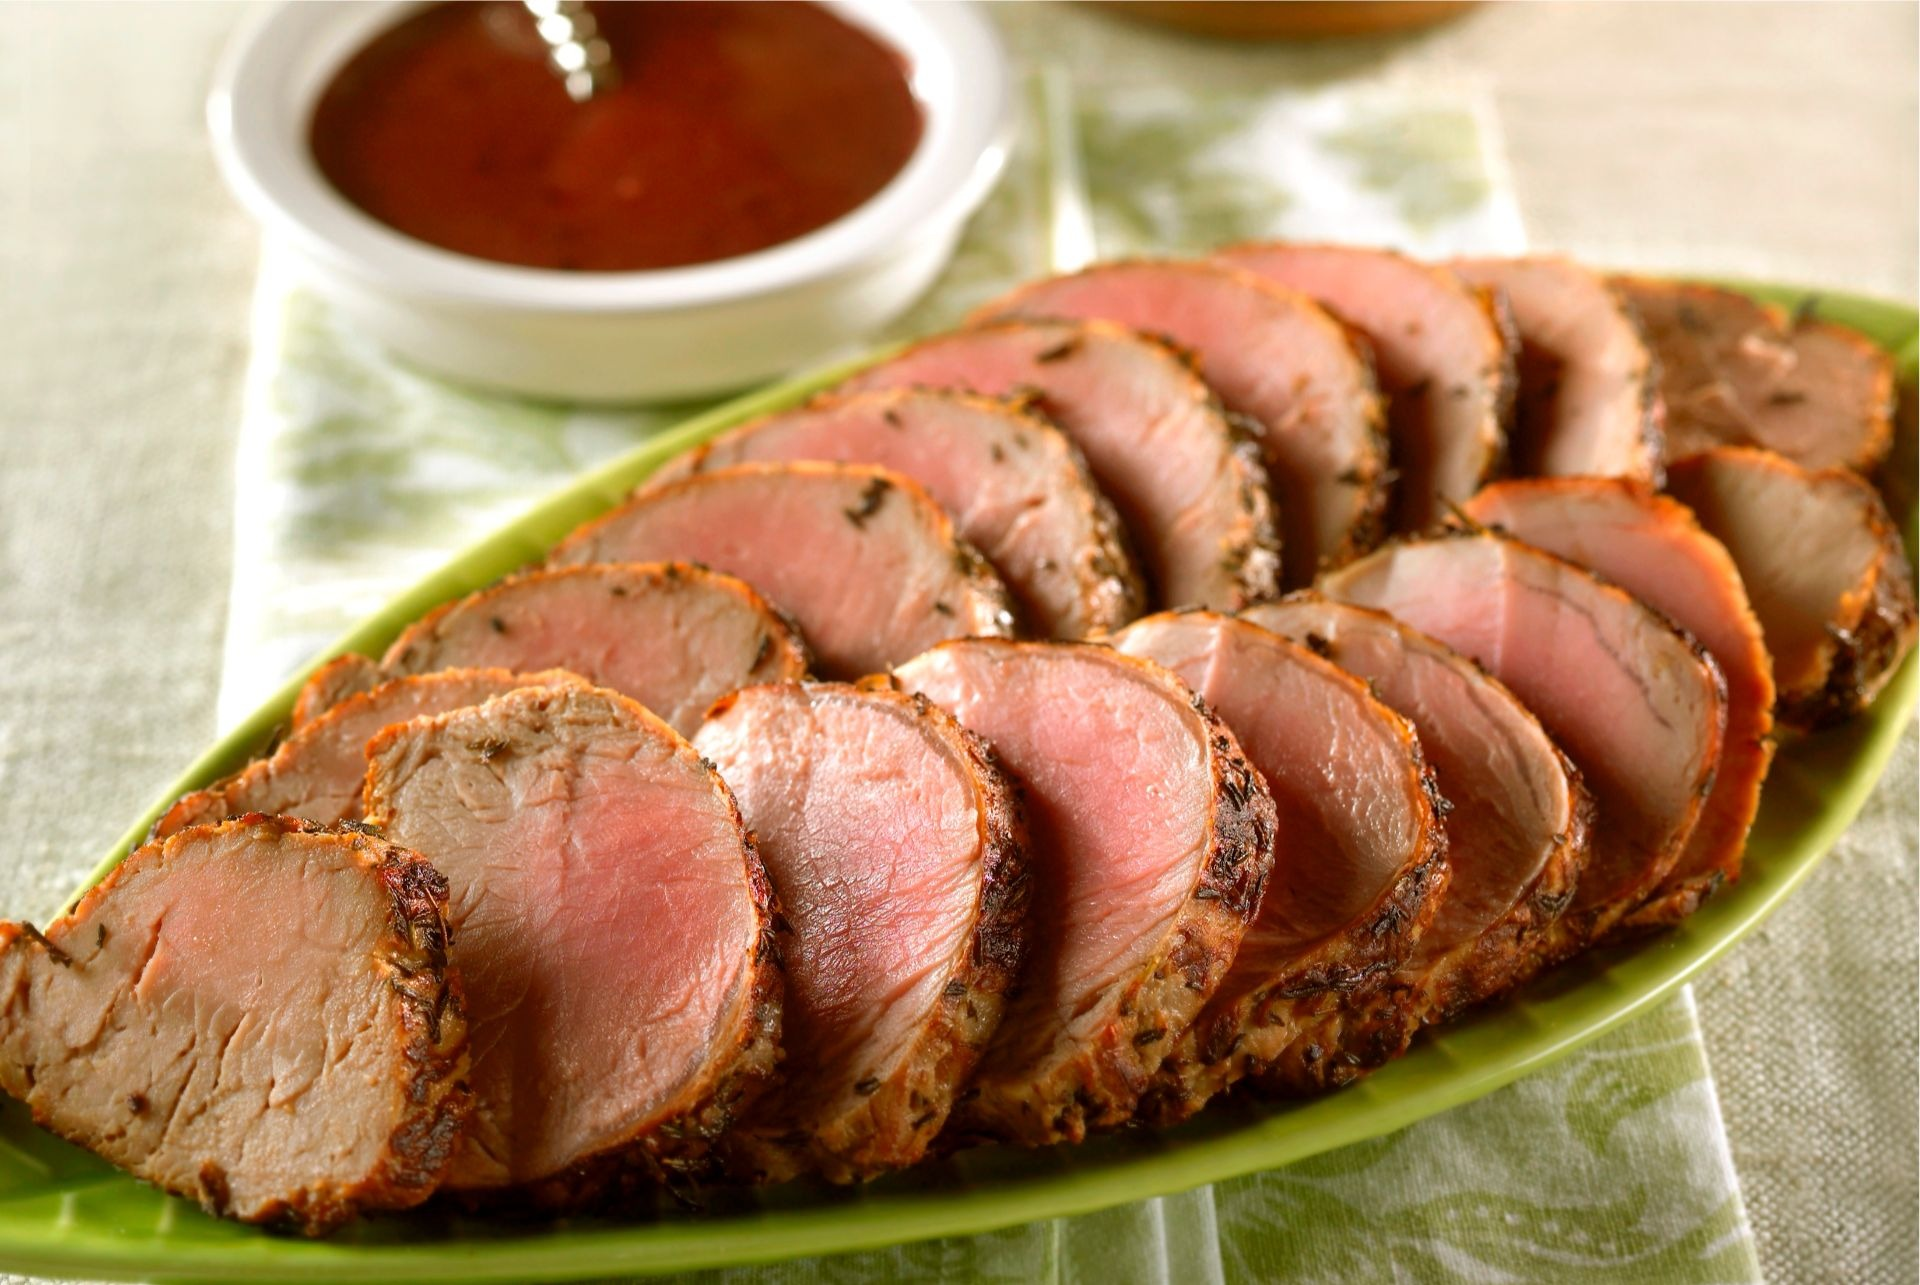 Platter of sliced pork tenderloin with small dish of raspberry mustard sauce in background